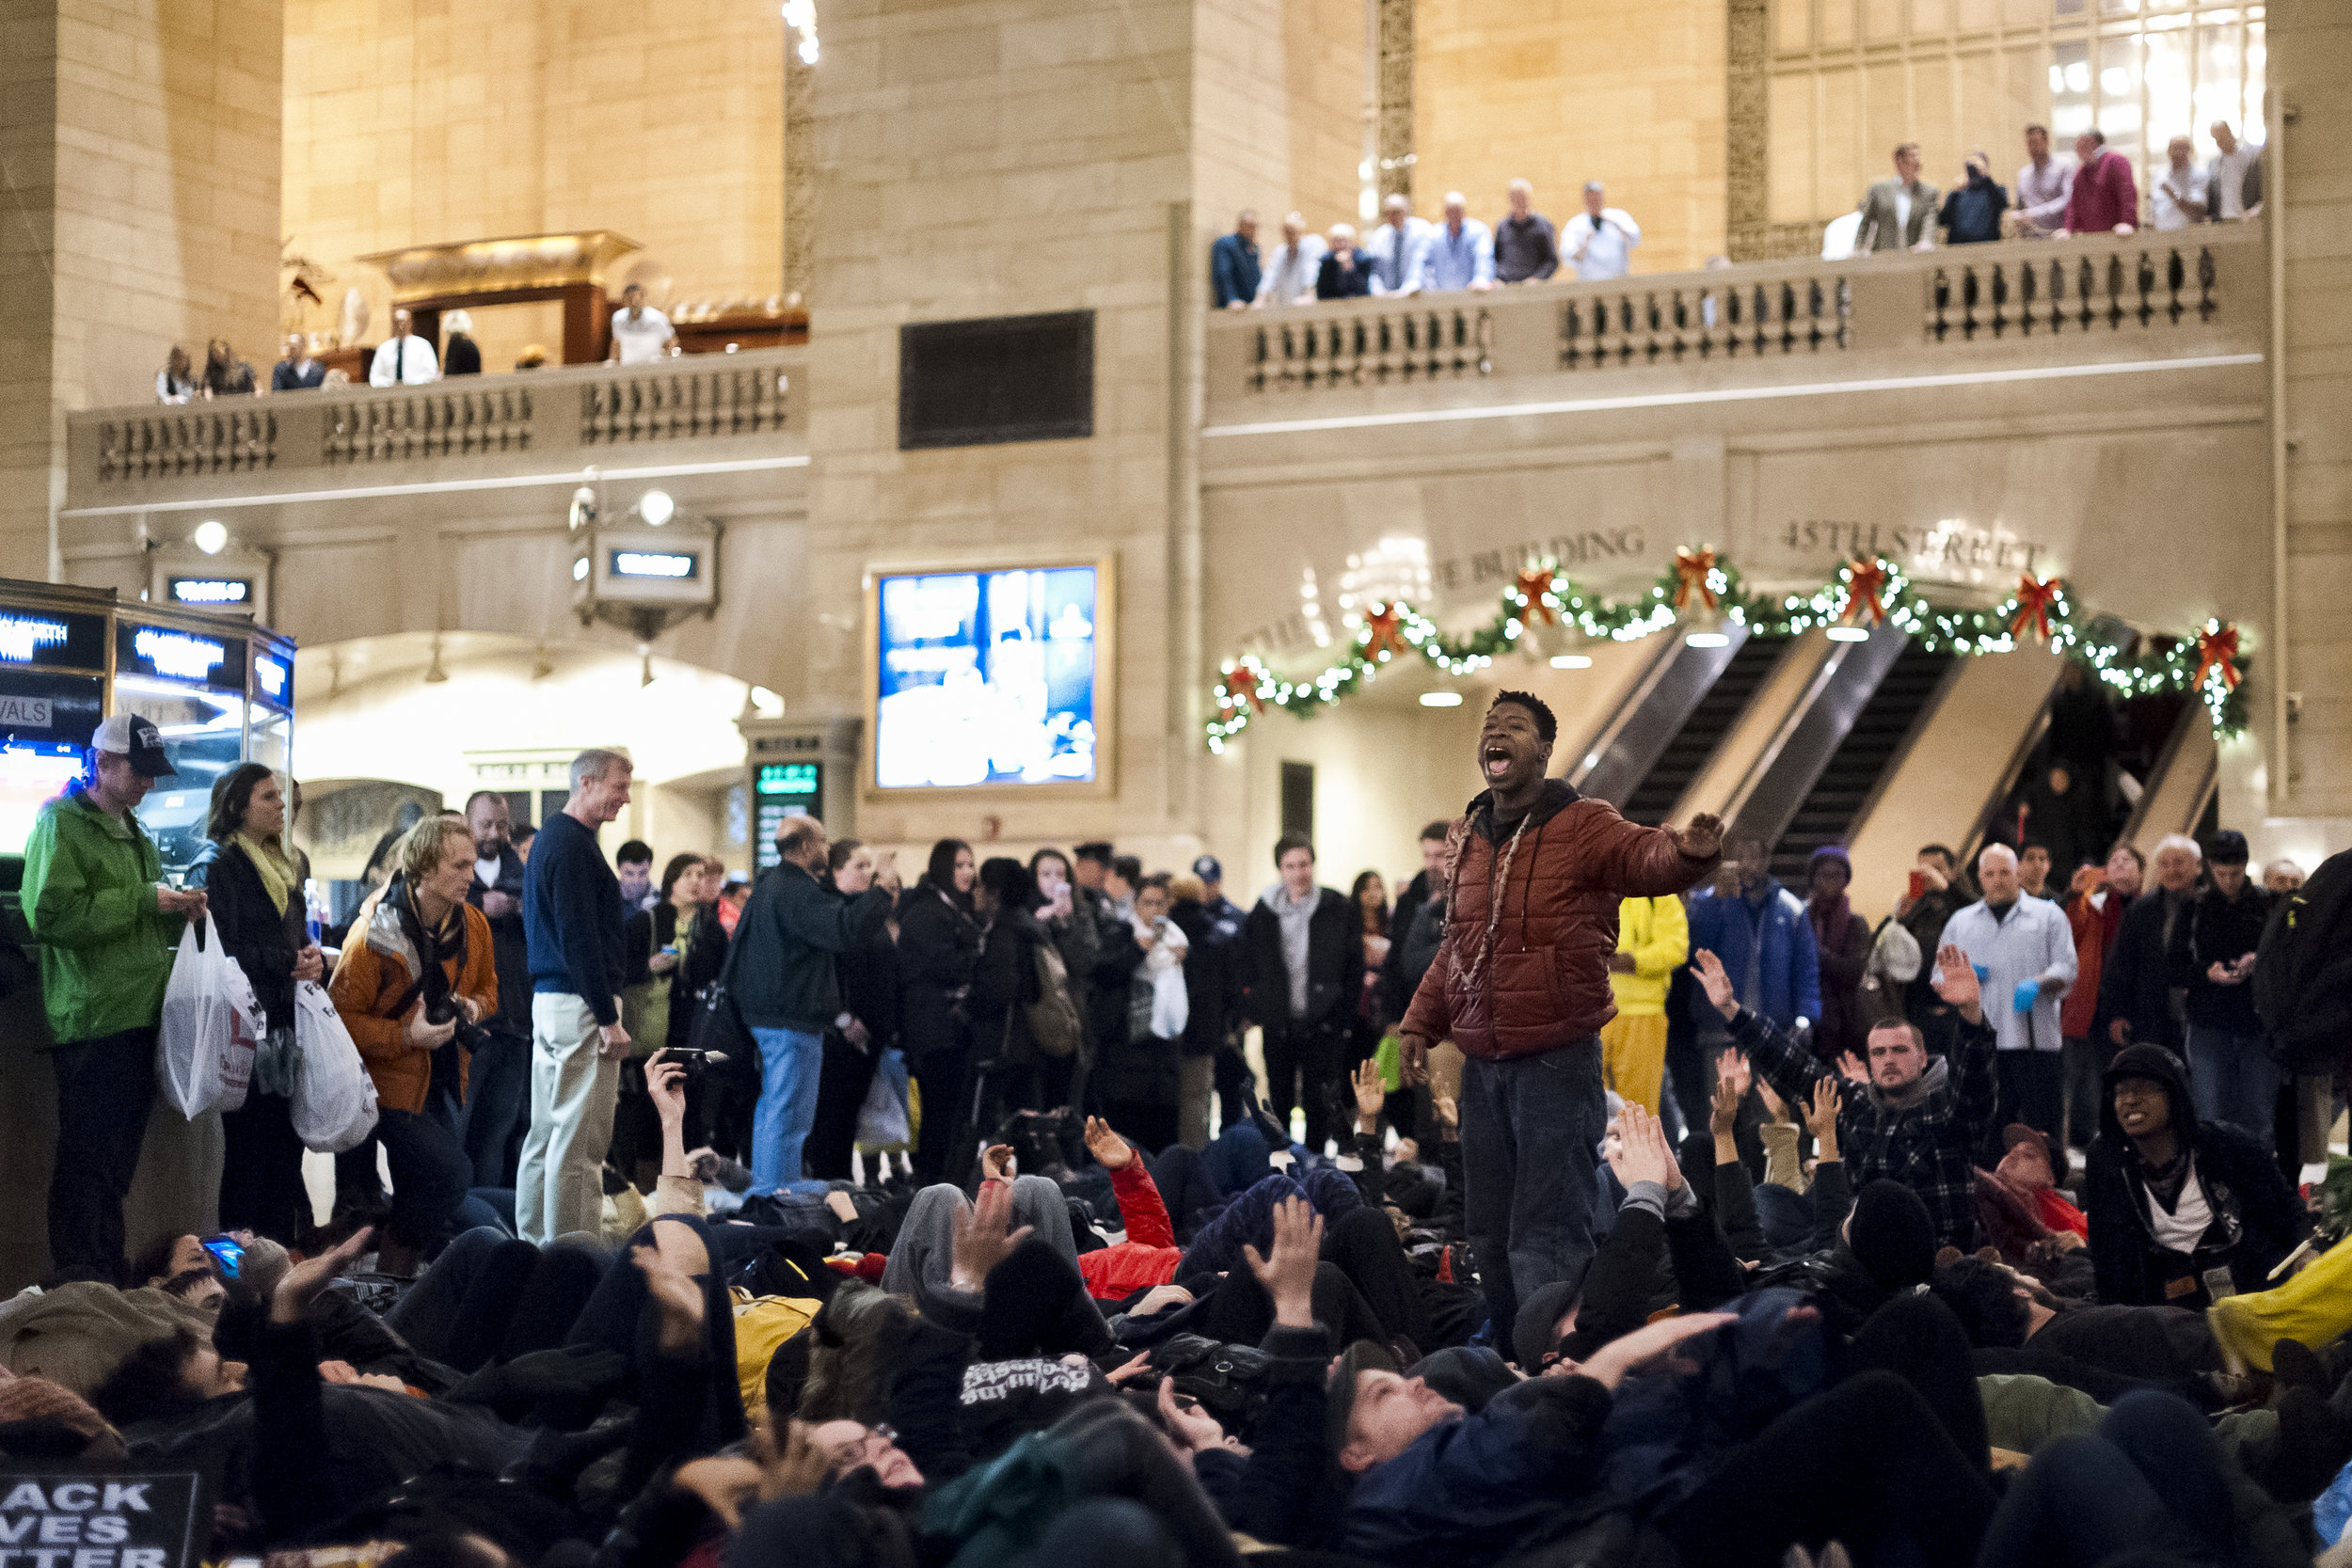 Demonstrators gather and speak in the center of the main atrium in Grand Central on December 6th, 2014. Weeks of protest followed a Staten Island grand jury's decision on December 3rd 2014 not to indict Officer Daniel Pantaleo in the killing of Eric Garner.